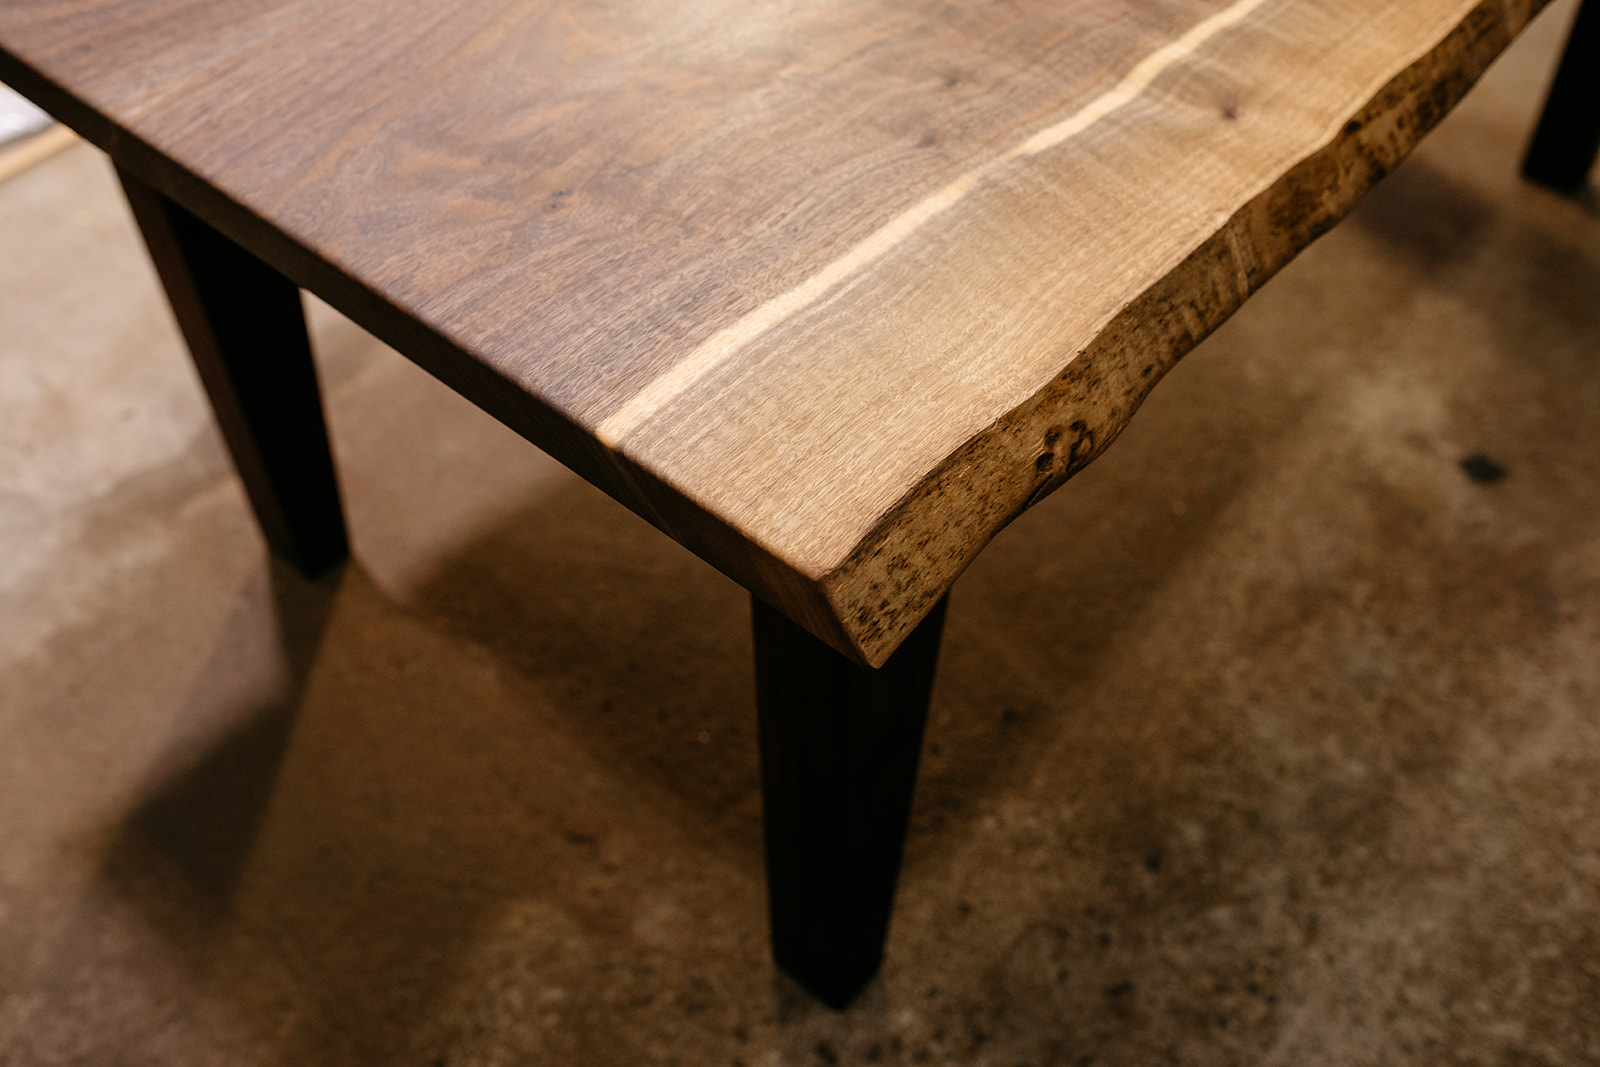 woodworking -